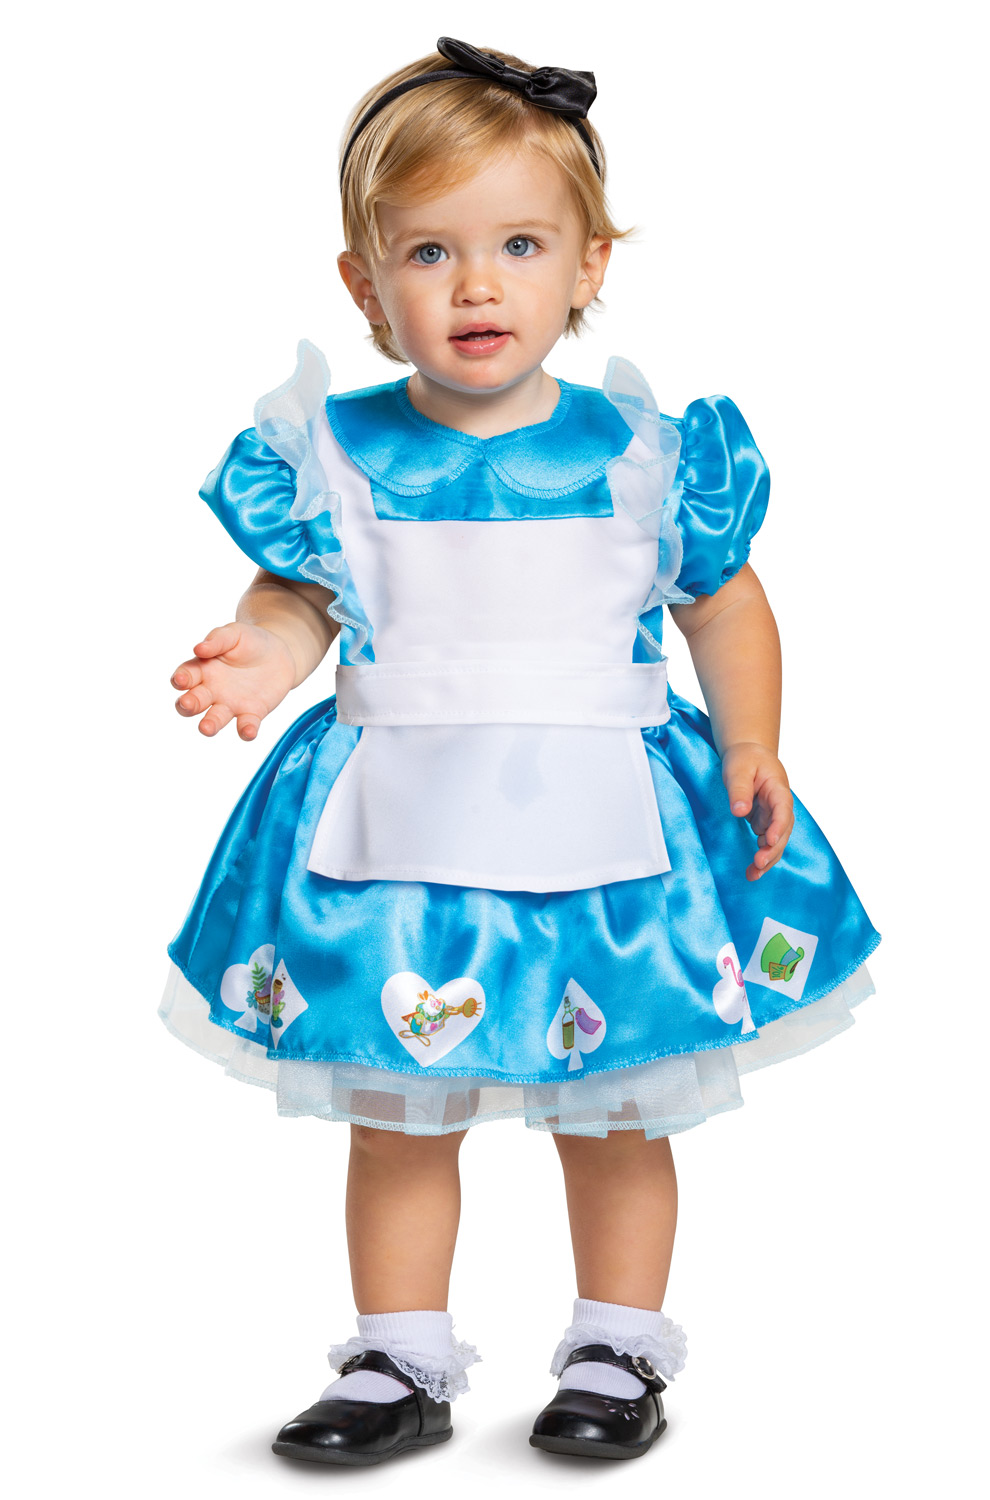 ALICE IN WONDERLAND COSTUME FOR BABY GIRLS